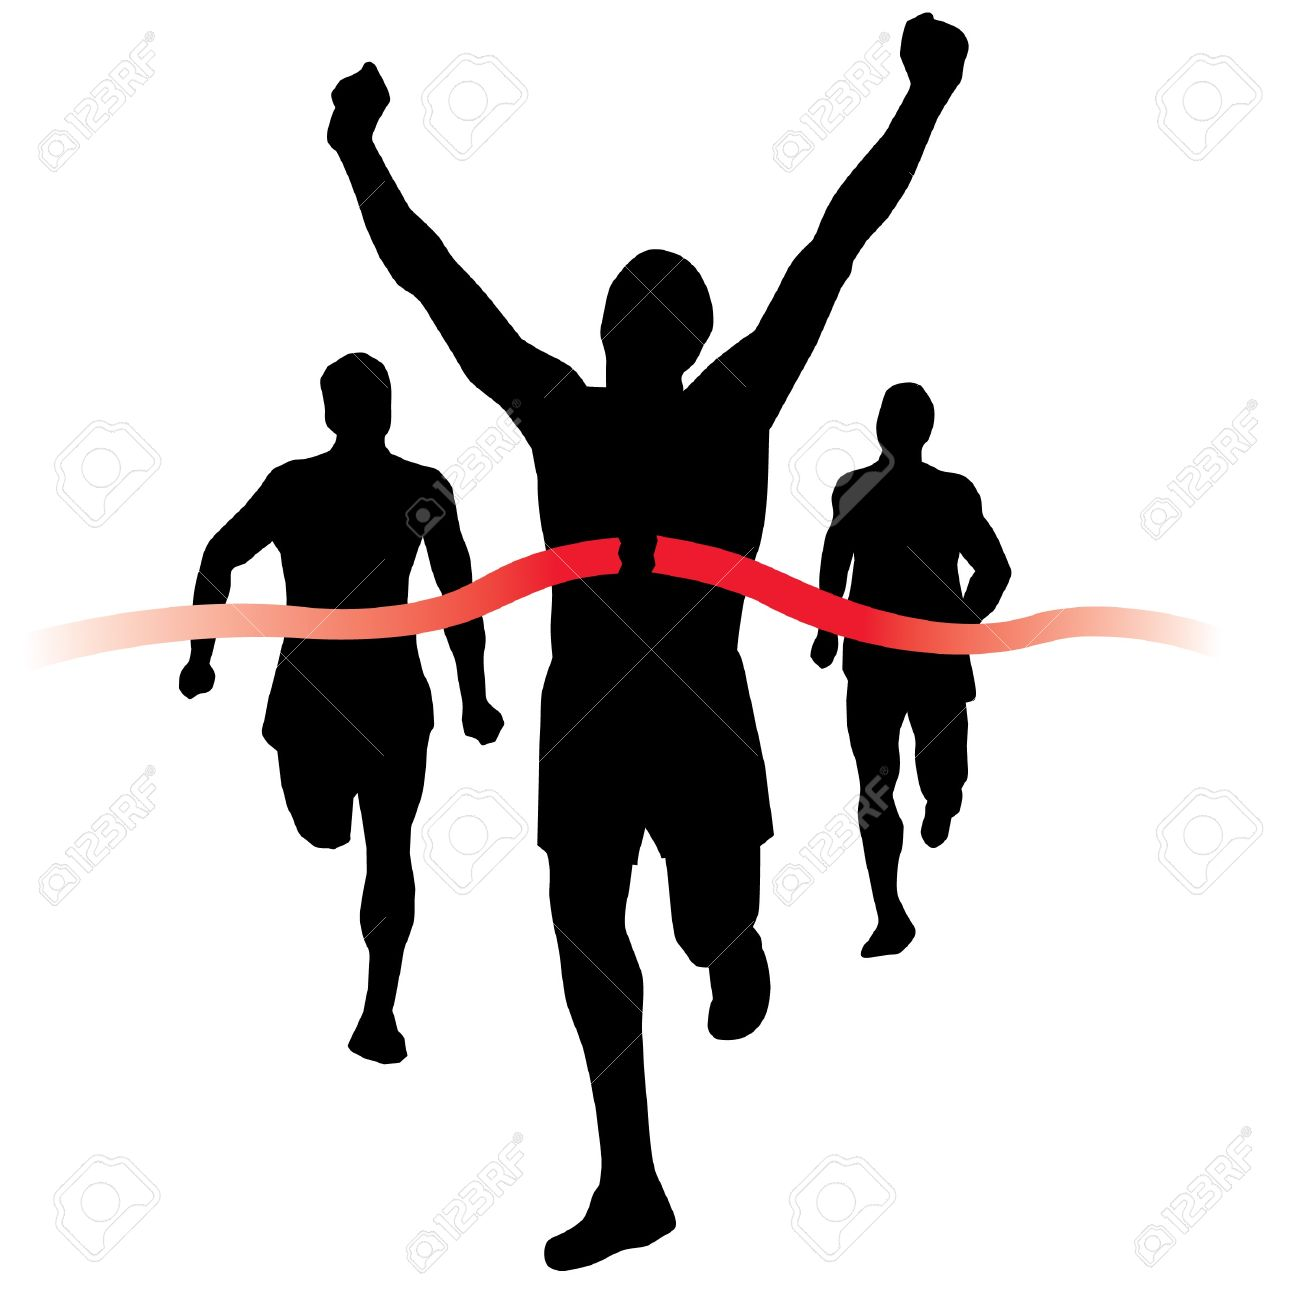 Racing Finish Line Clipart (72+).